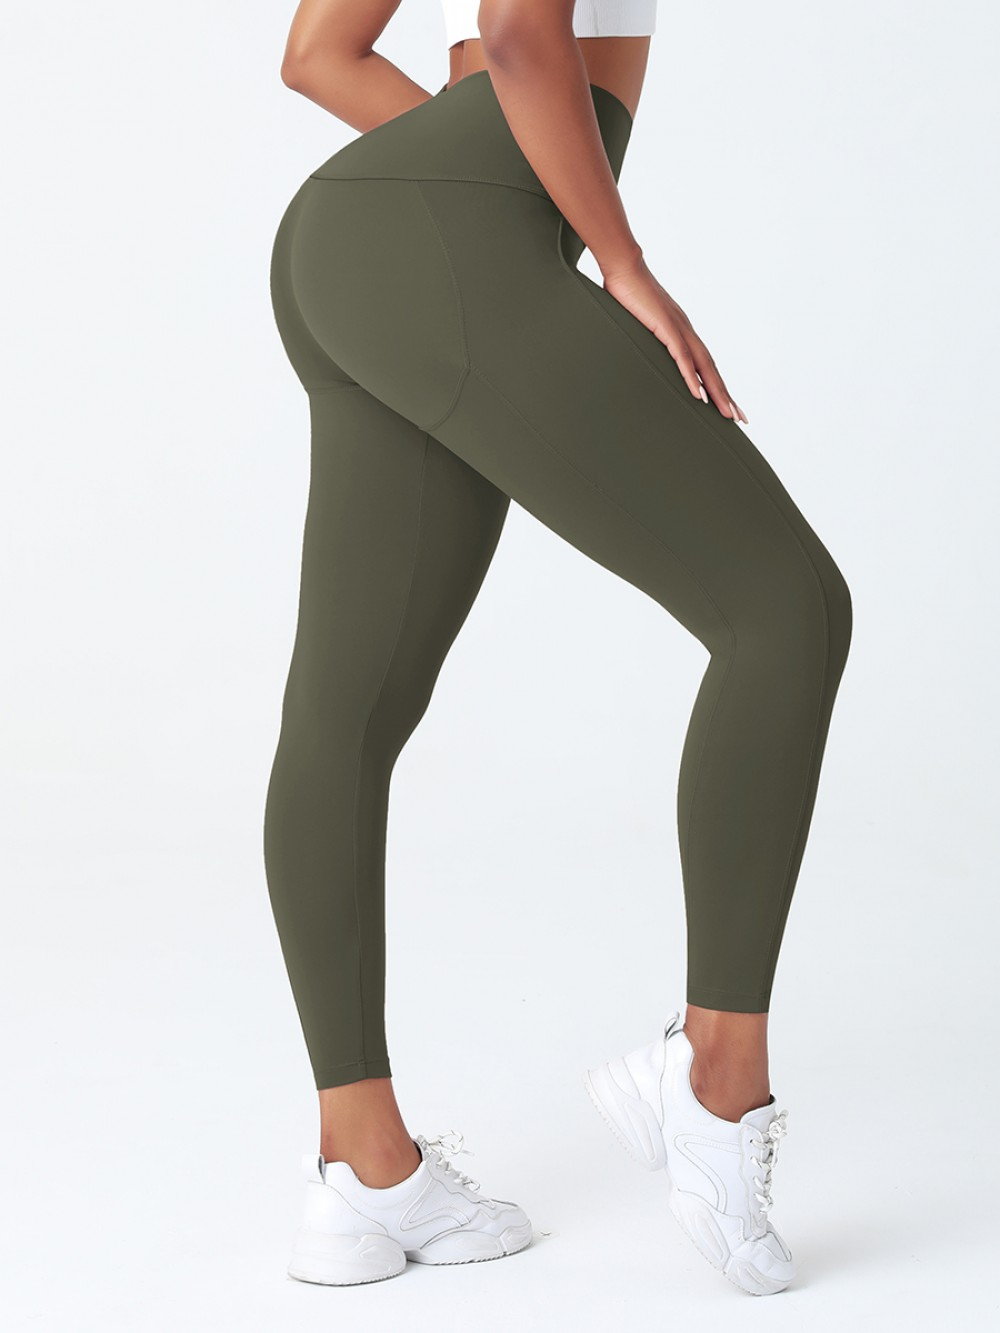 Army Green Wide Wasitband 4-Way Stretch Yoga Pants For Training